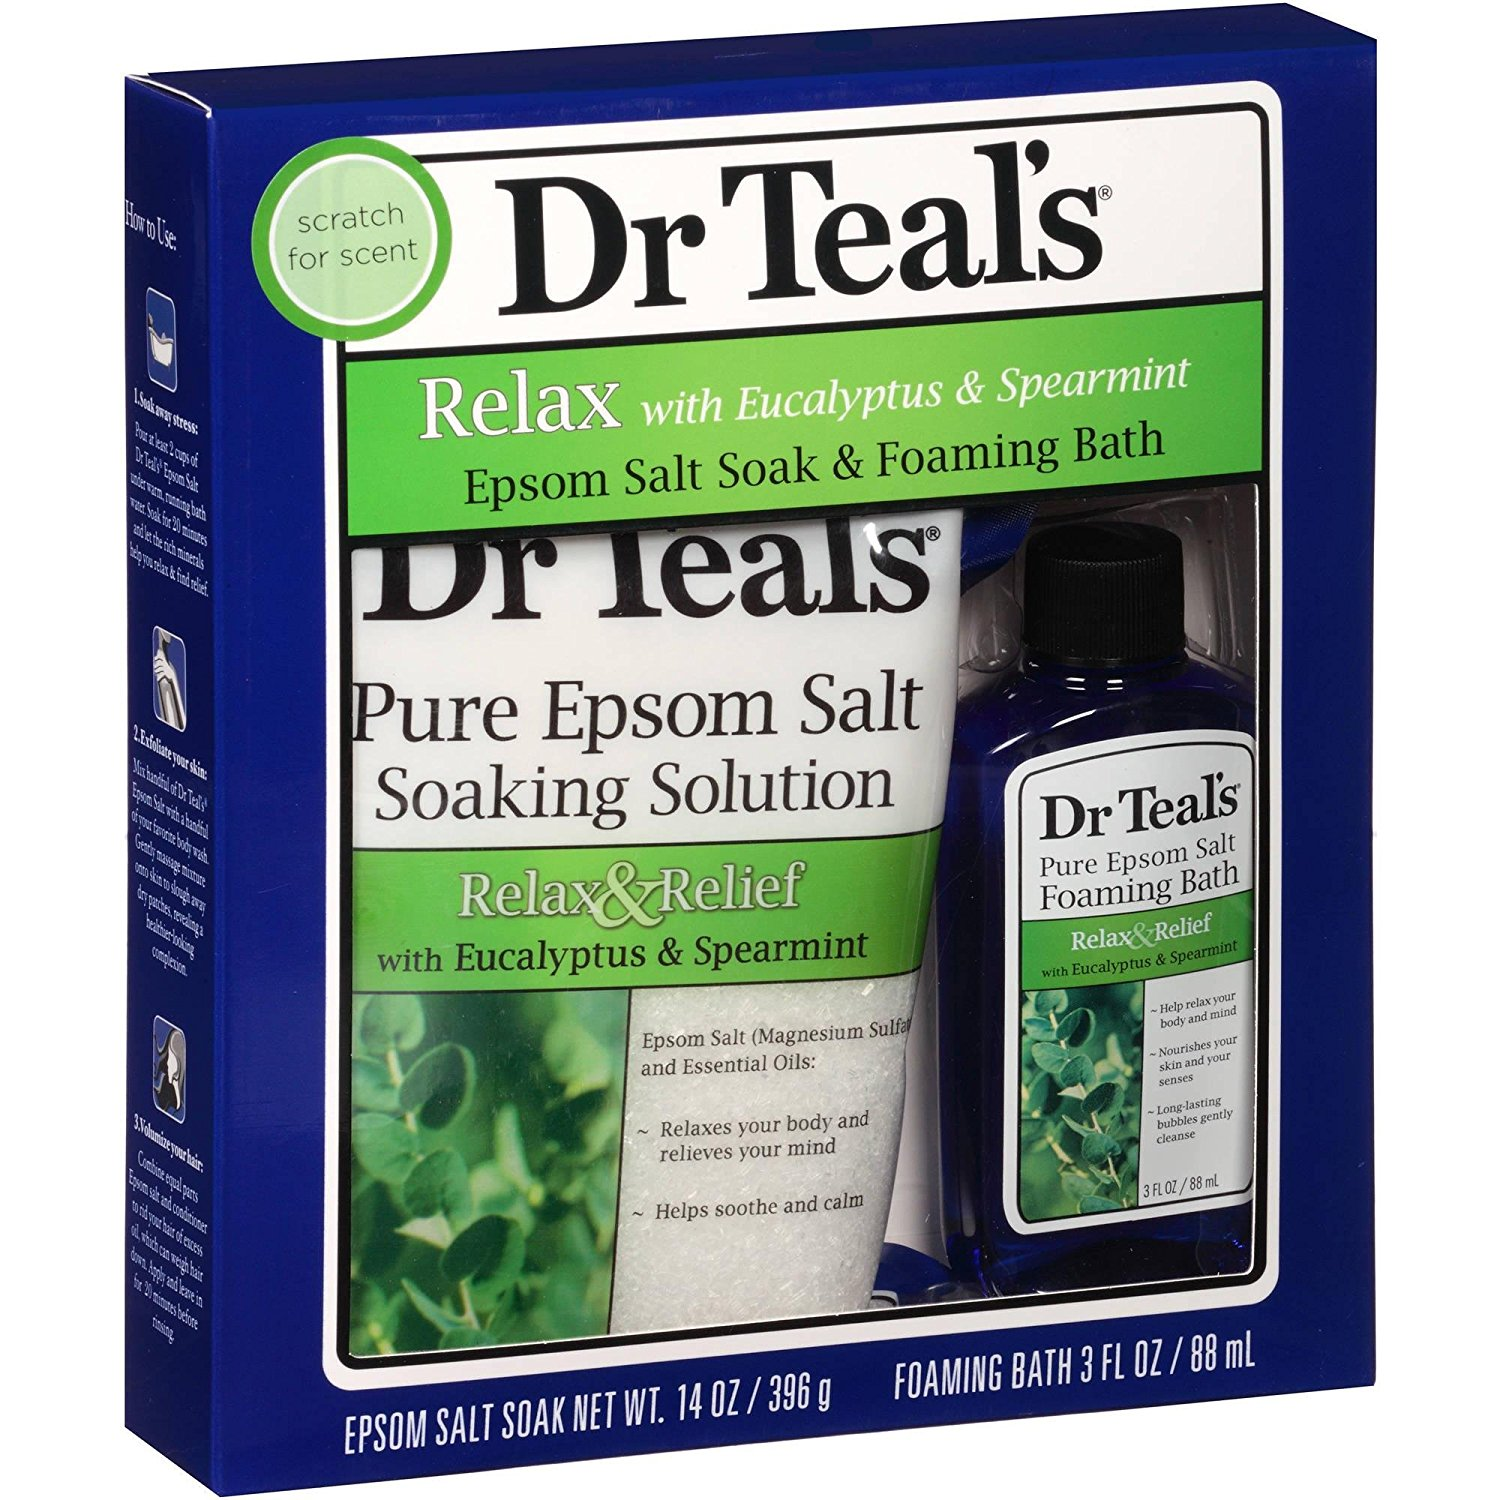 Dr Teal's Epsom Salt Soak & Foaming Bath Gift Set (Relax with Eucalyptus & Spearmint), Includes 14oz of Soaking Solution and 3oz of Foaming Bath By Dr Teals